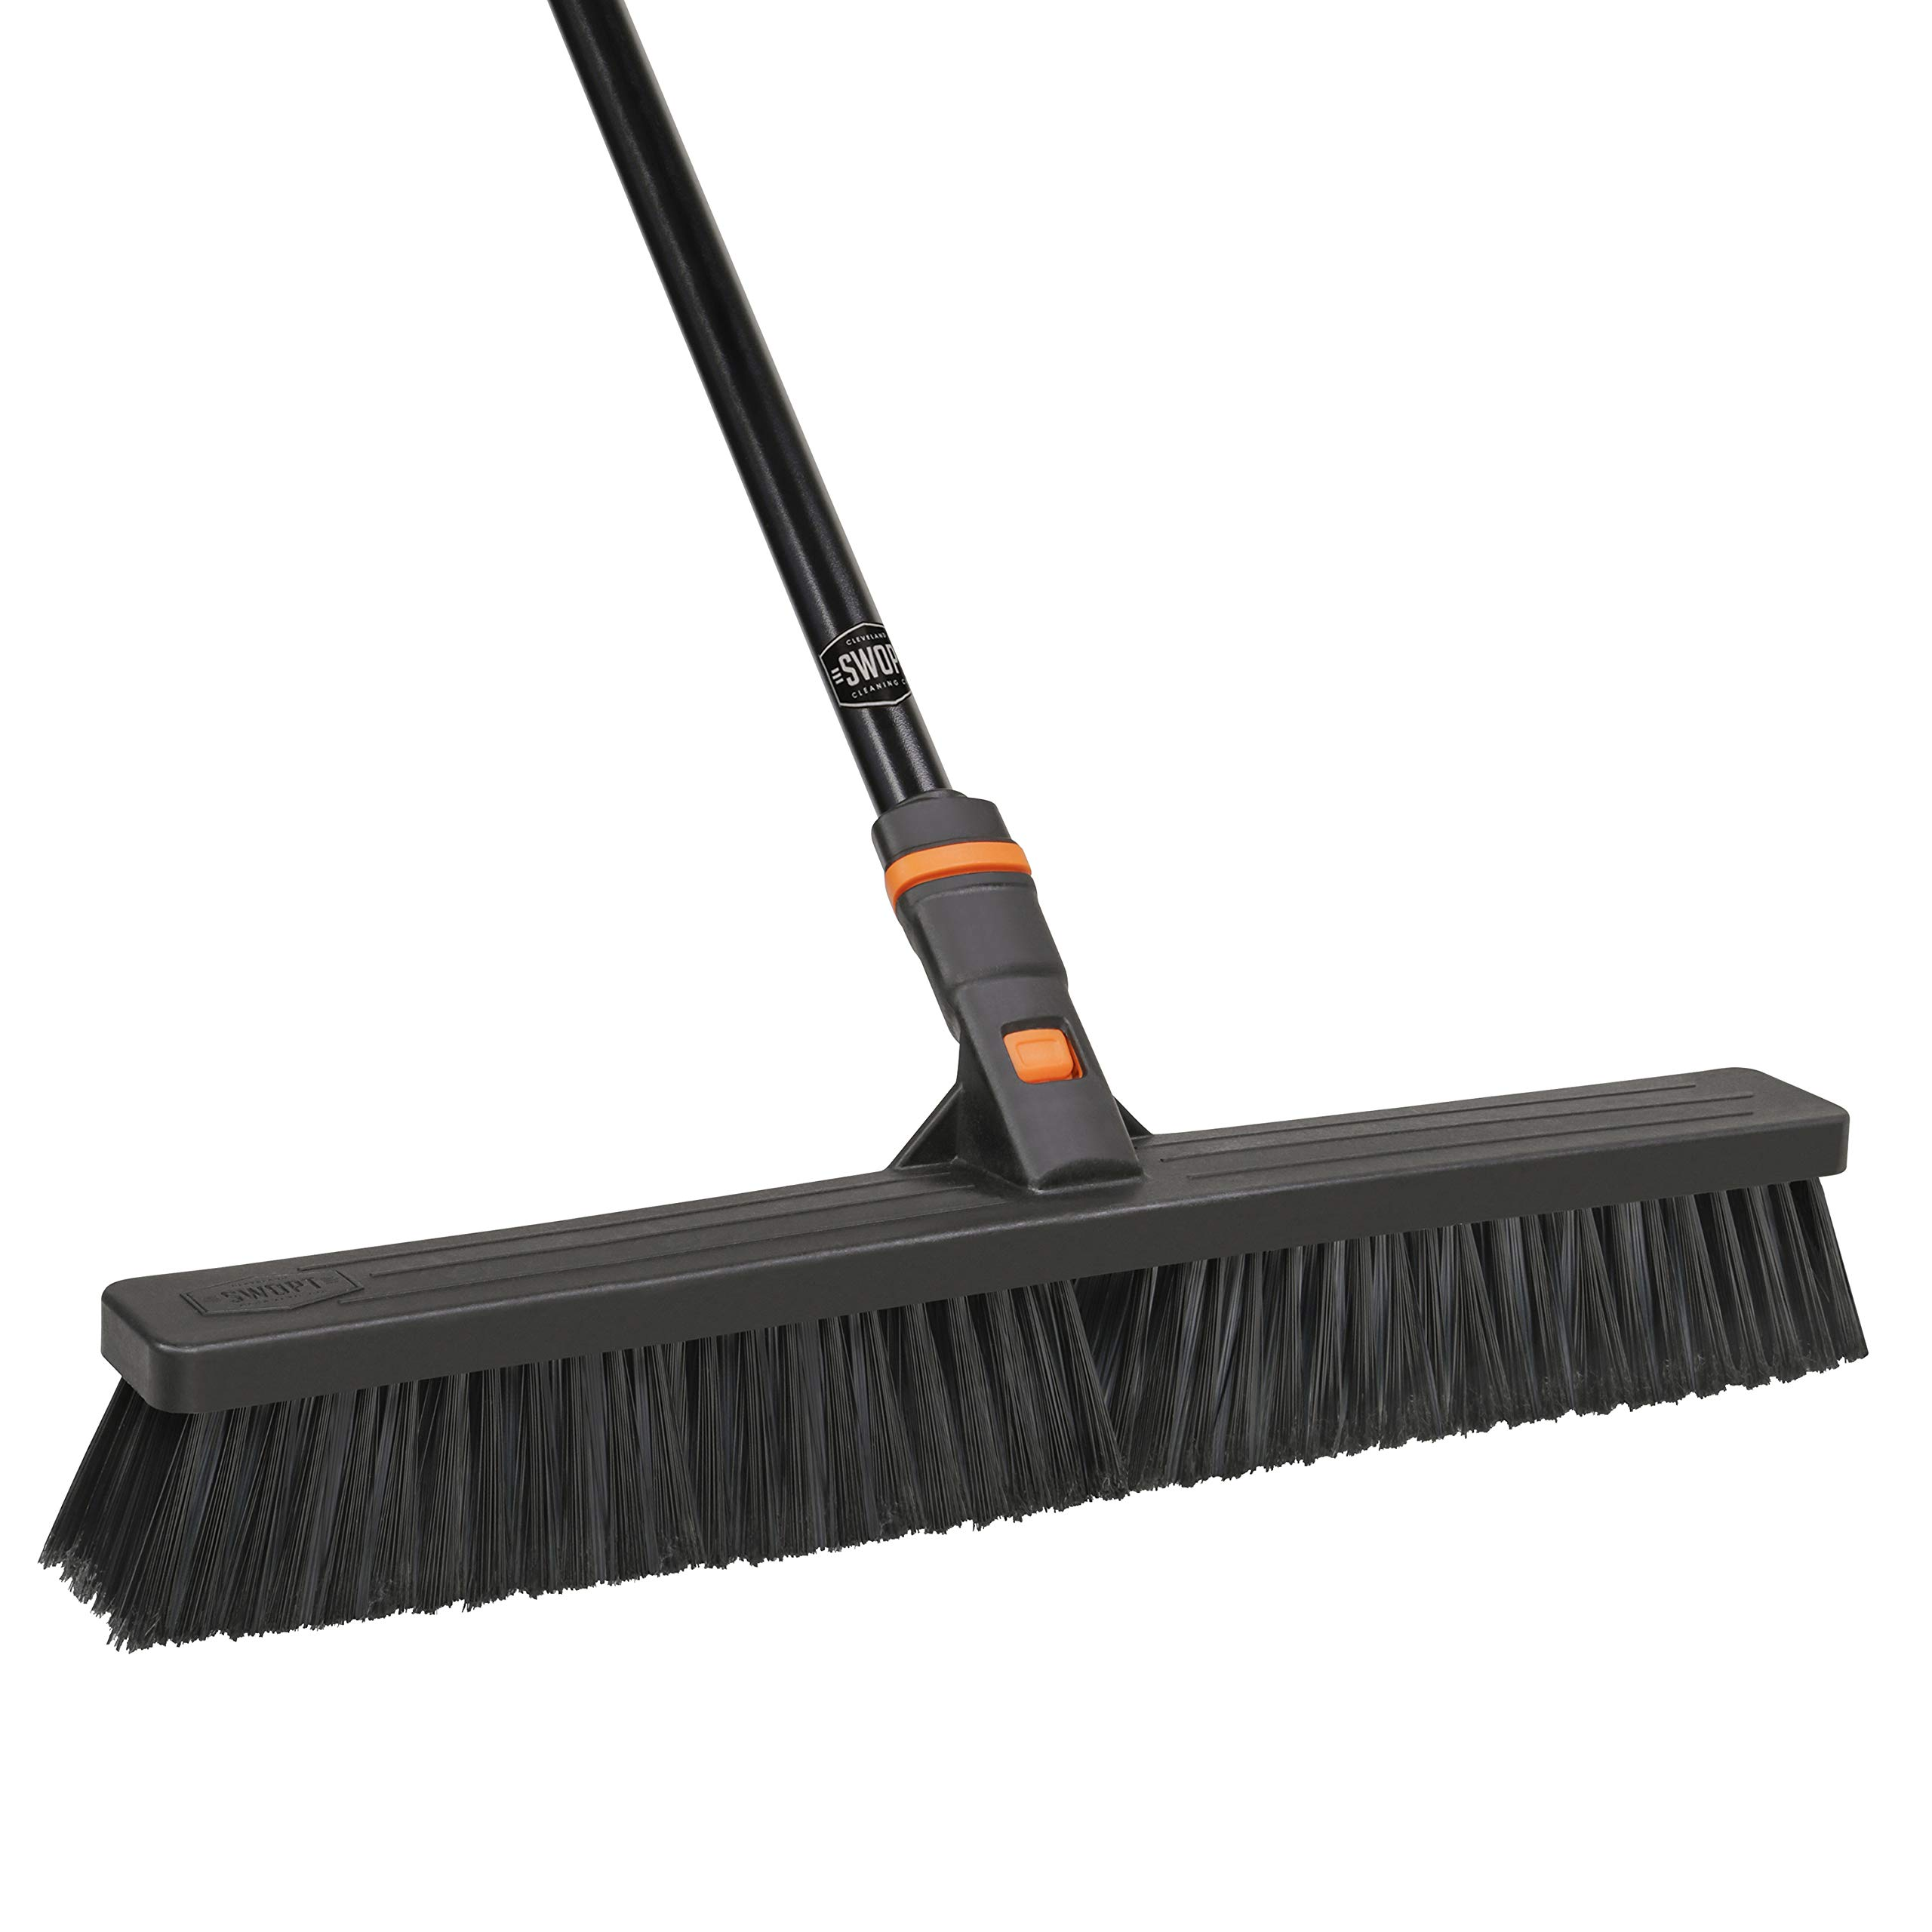 24'' SWOPT Multi-Surface Standard Push Broom - 60'' Steel Handle - Interchangeable Handle Works with Other SWOPT Cleaning Products - Great for Indoor and Outdoor Applications by Swopt